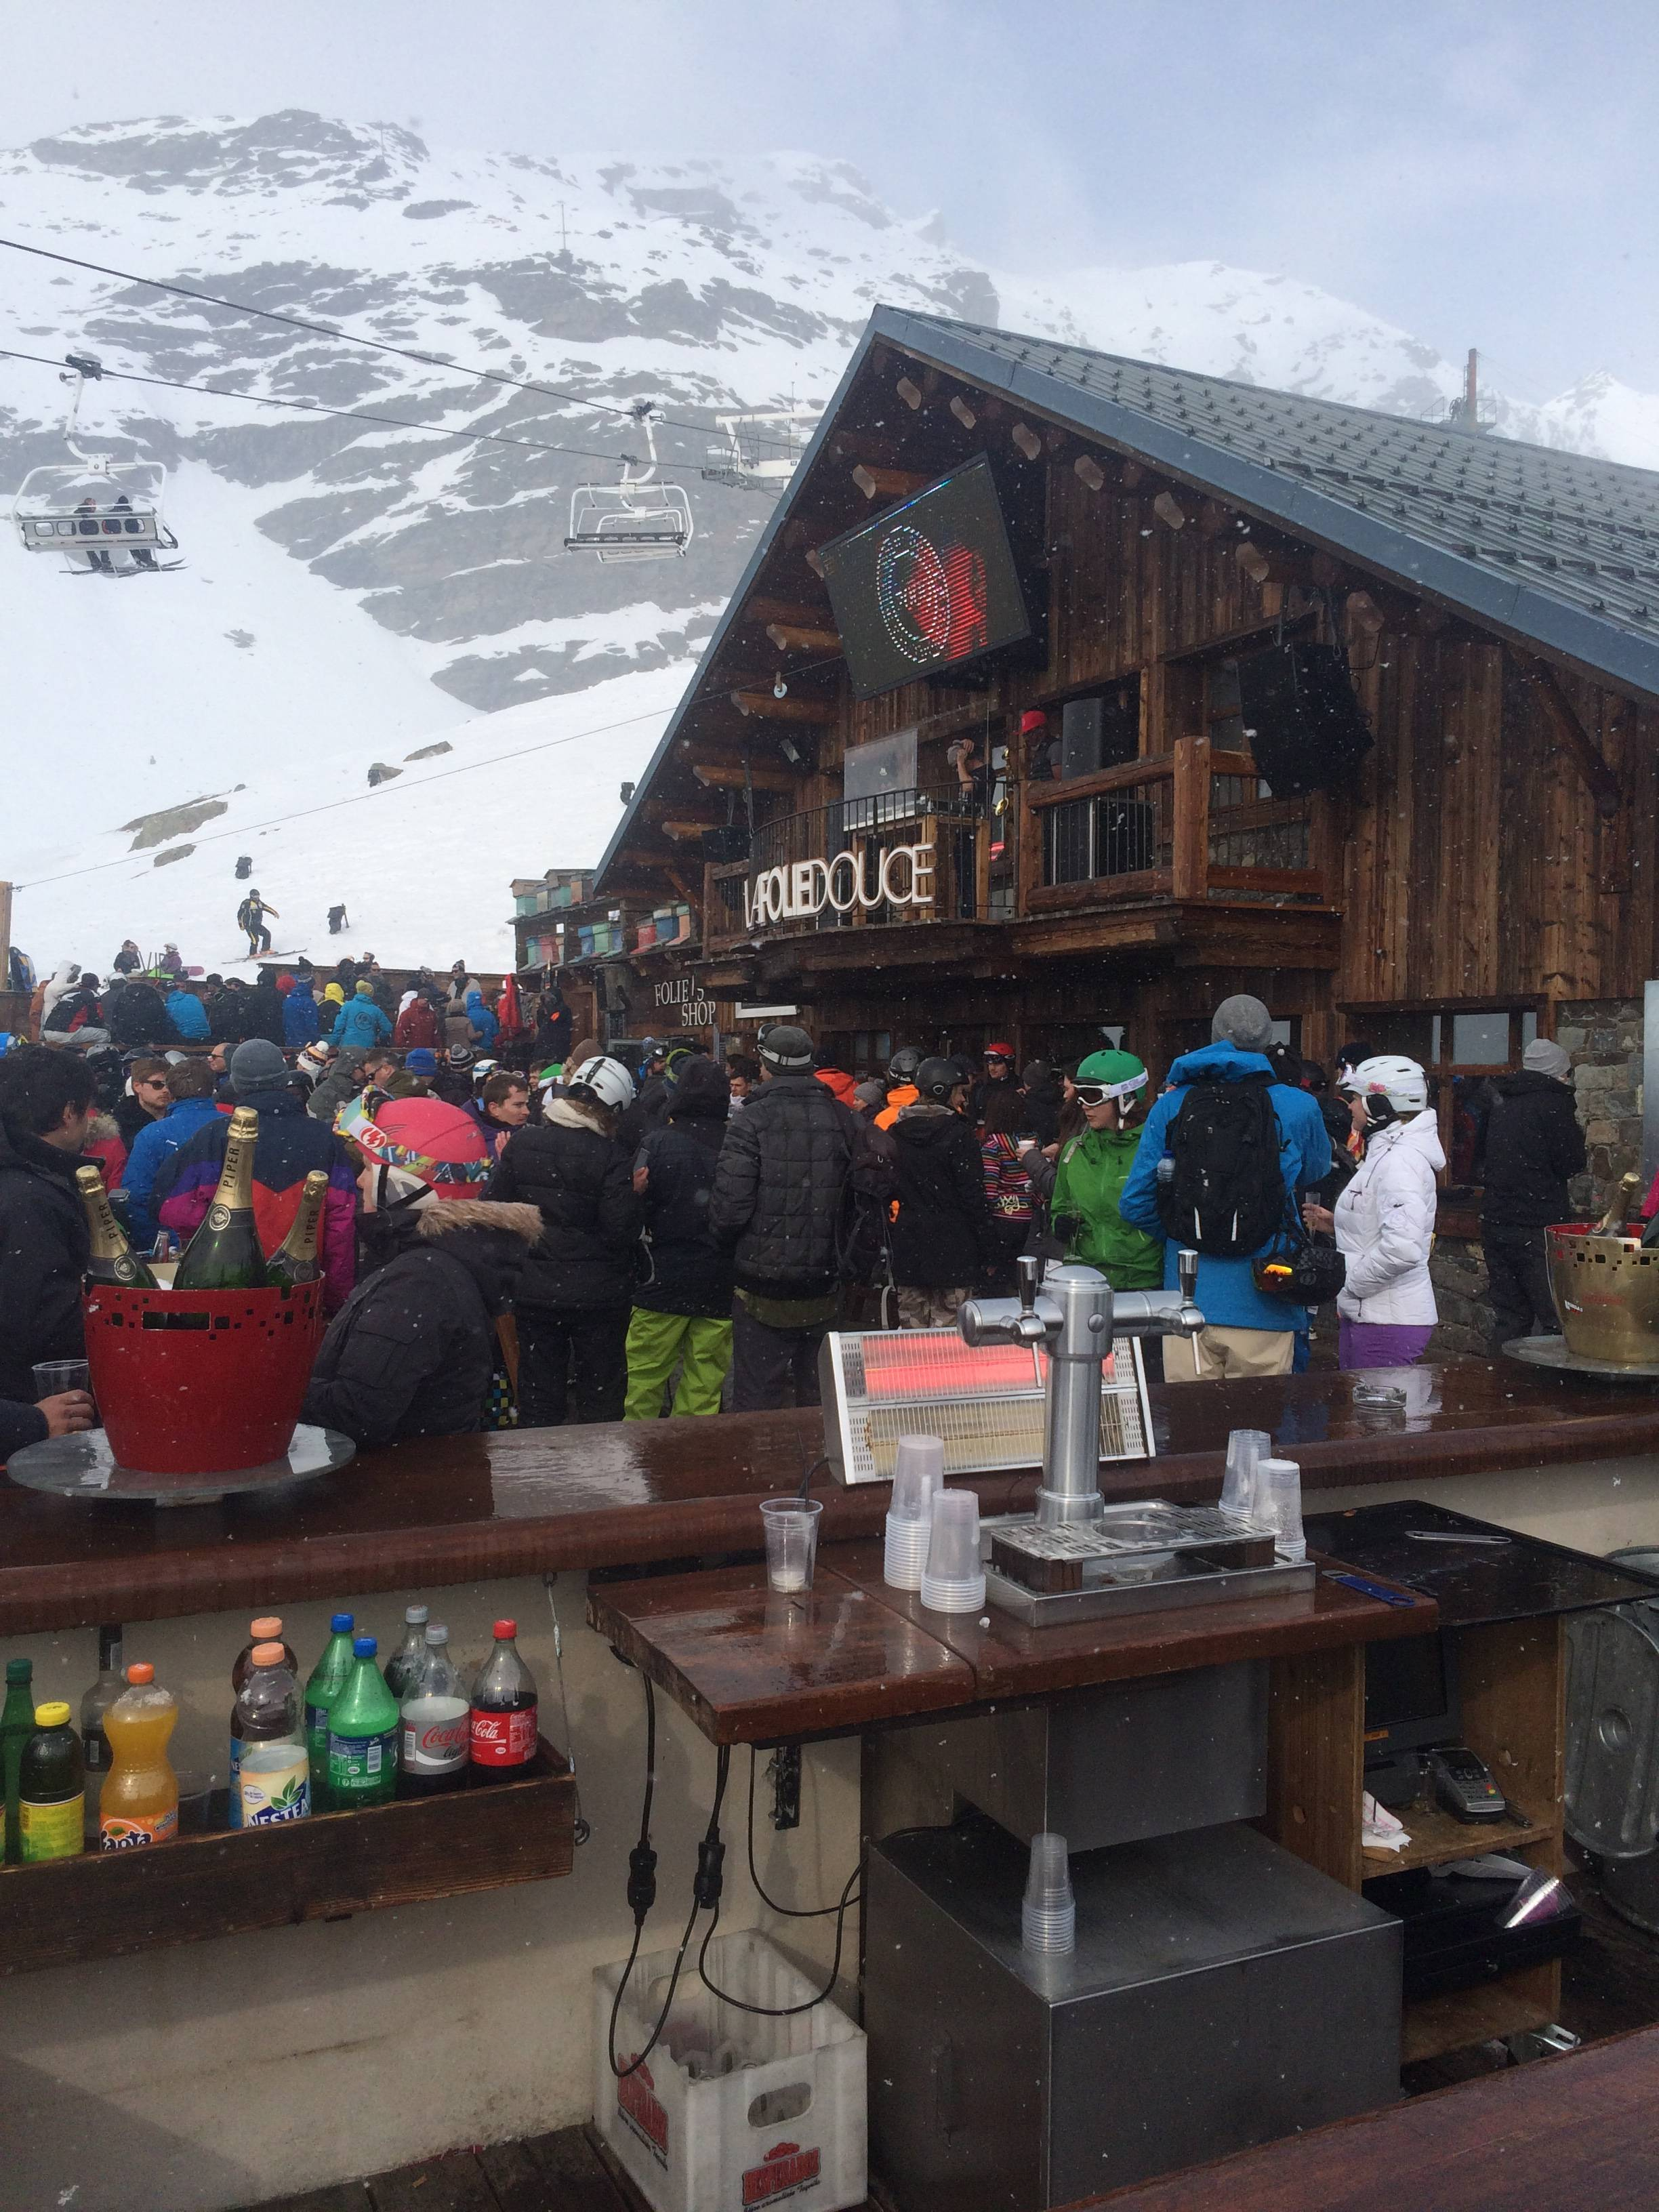 Photo 3: LA FOLIE DOUCE..val thorens